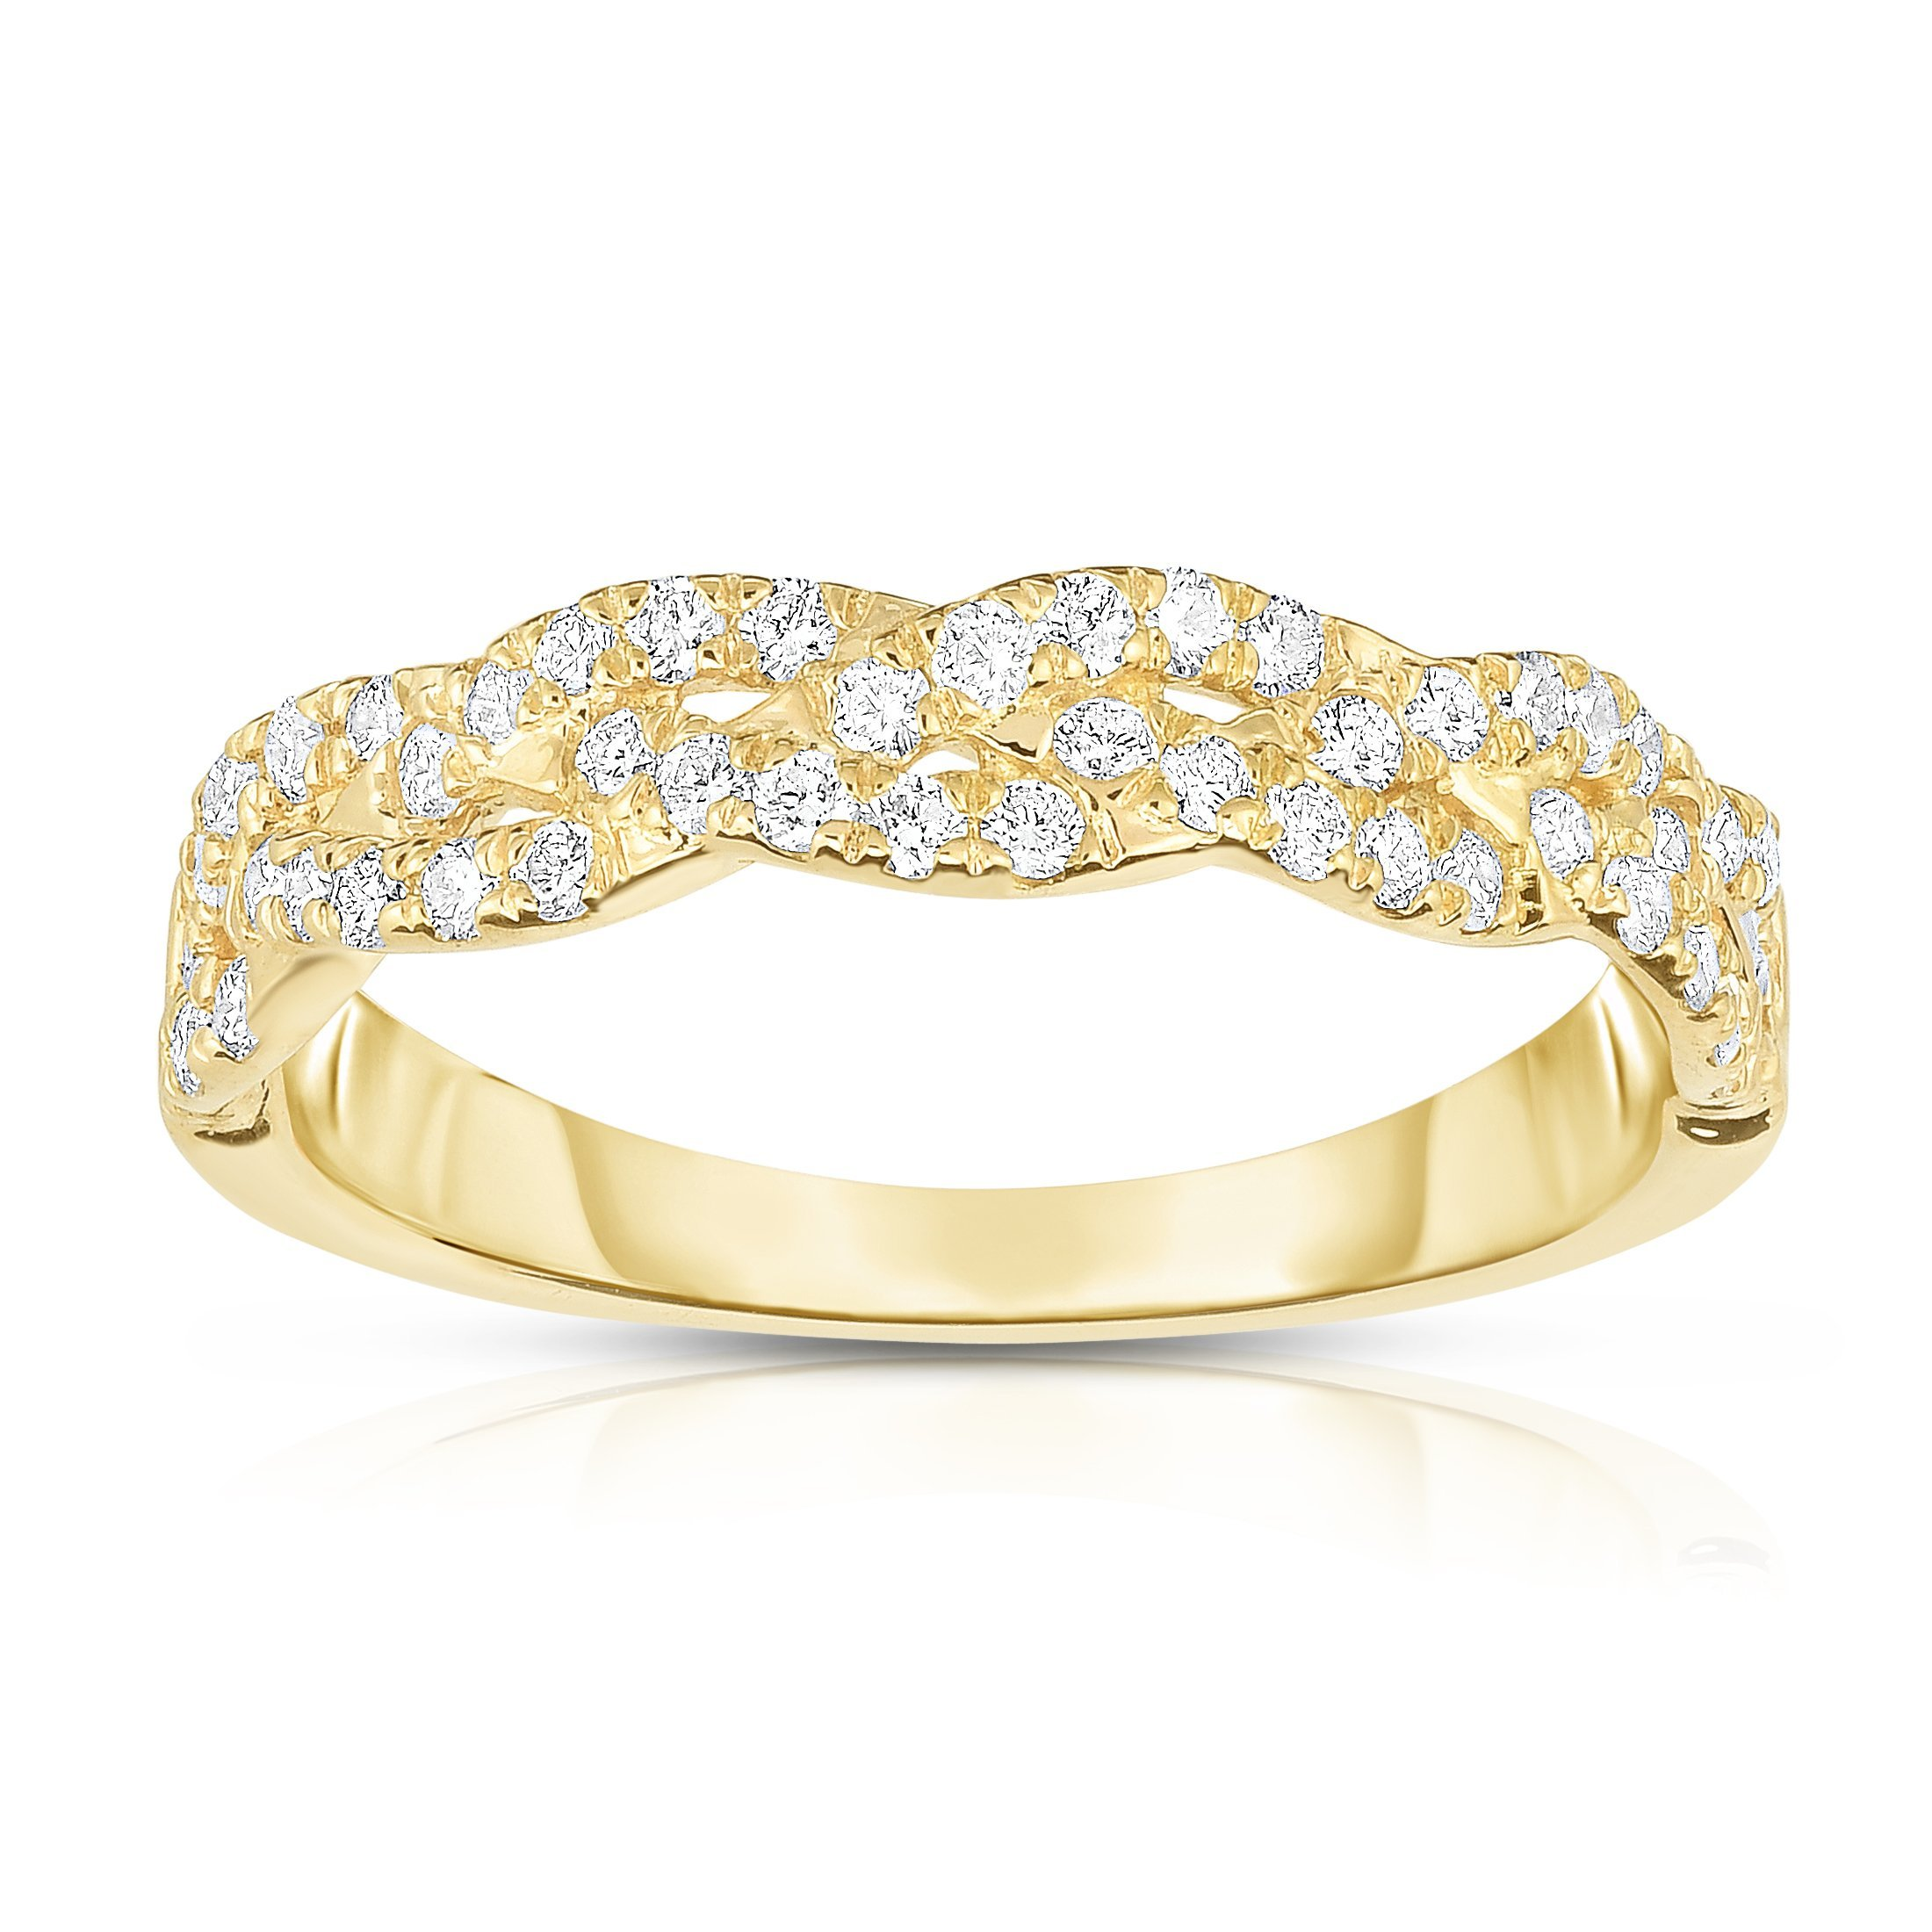 Noray Designs 14k Yellow Gold Diamond (0.45 Ct, G-H Color, SI2-I1 Clarity) Infinity Ring